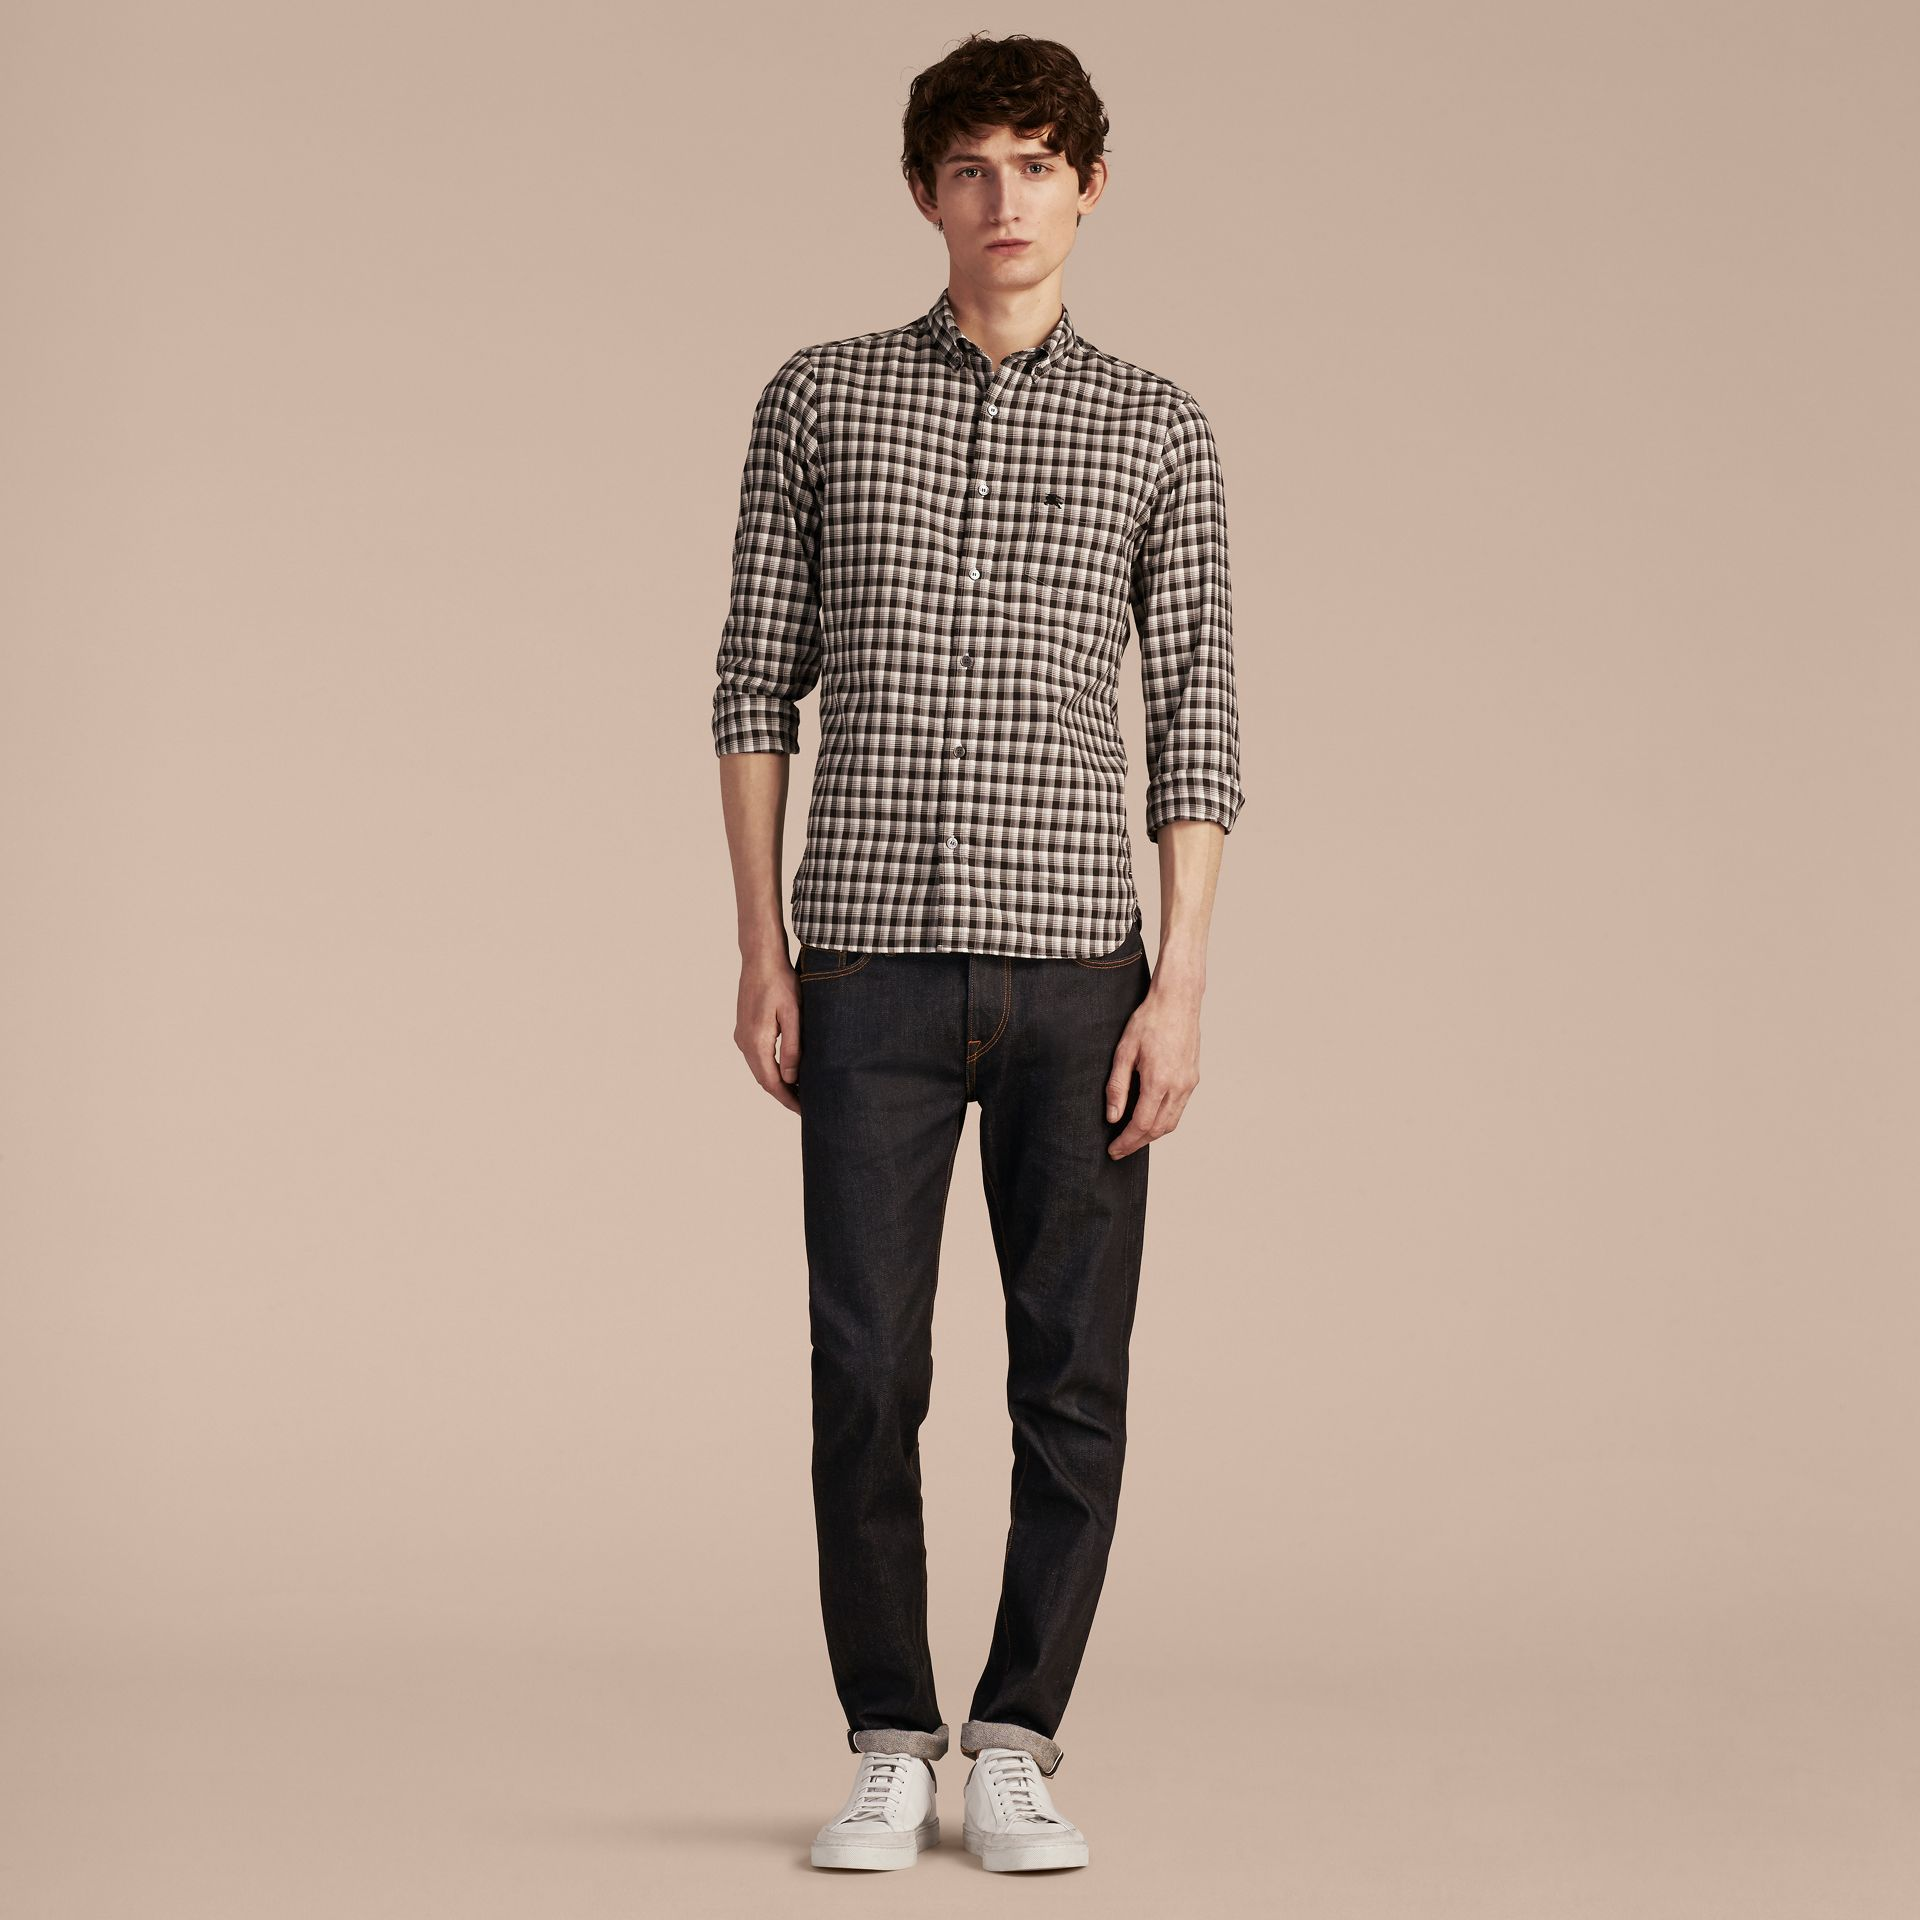 Black Gingham Check Cotton Twill Shirt Black - gallery image 6